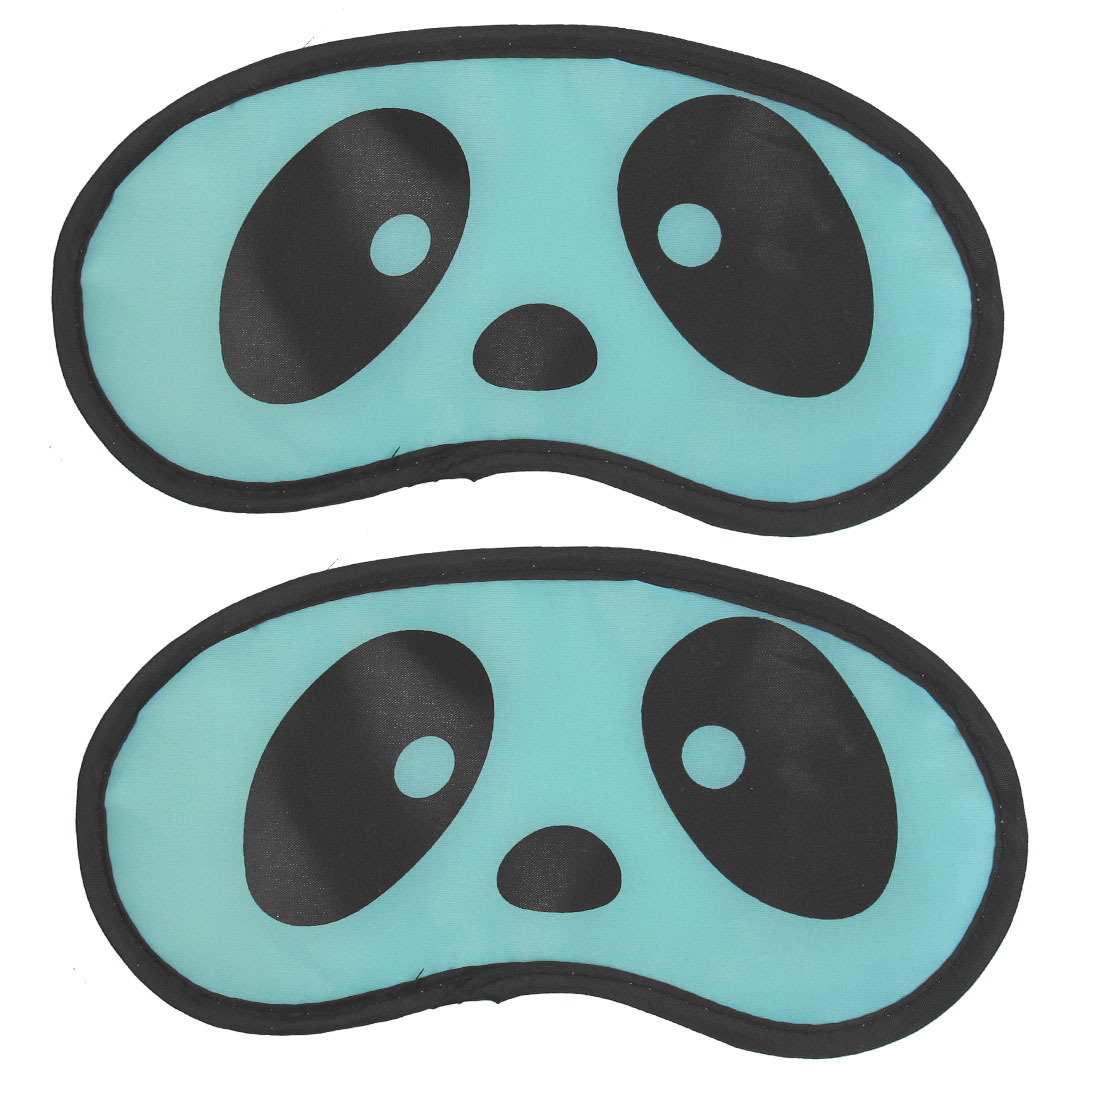 2 Pcs Blue Panda Eyes Print Soft Travel Sleeping Aids Eye Mask Eyeshade